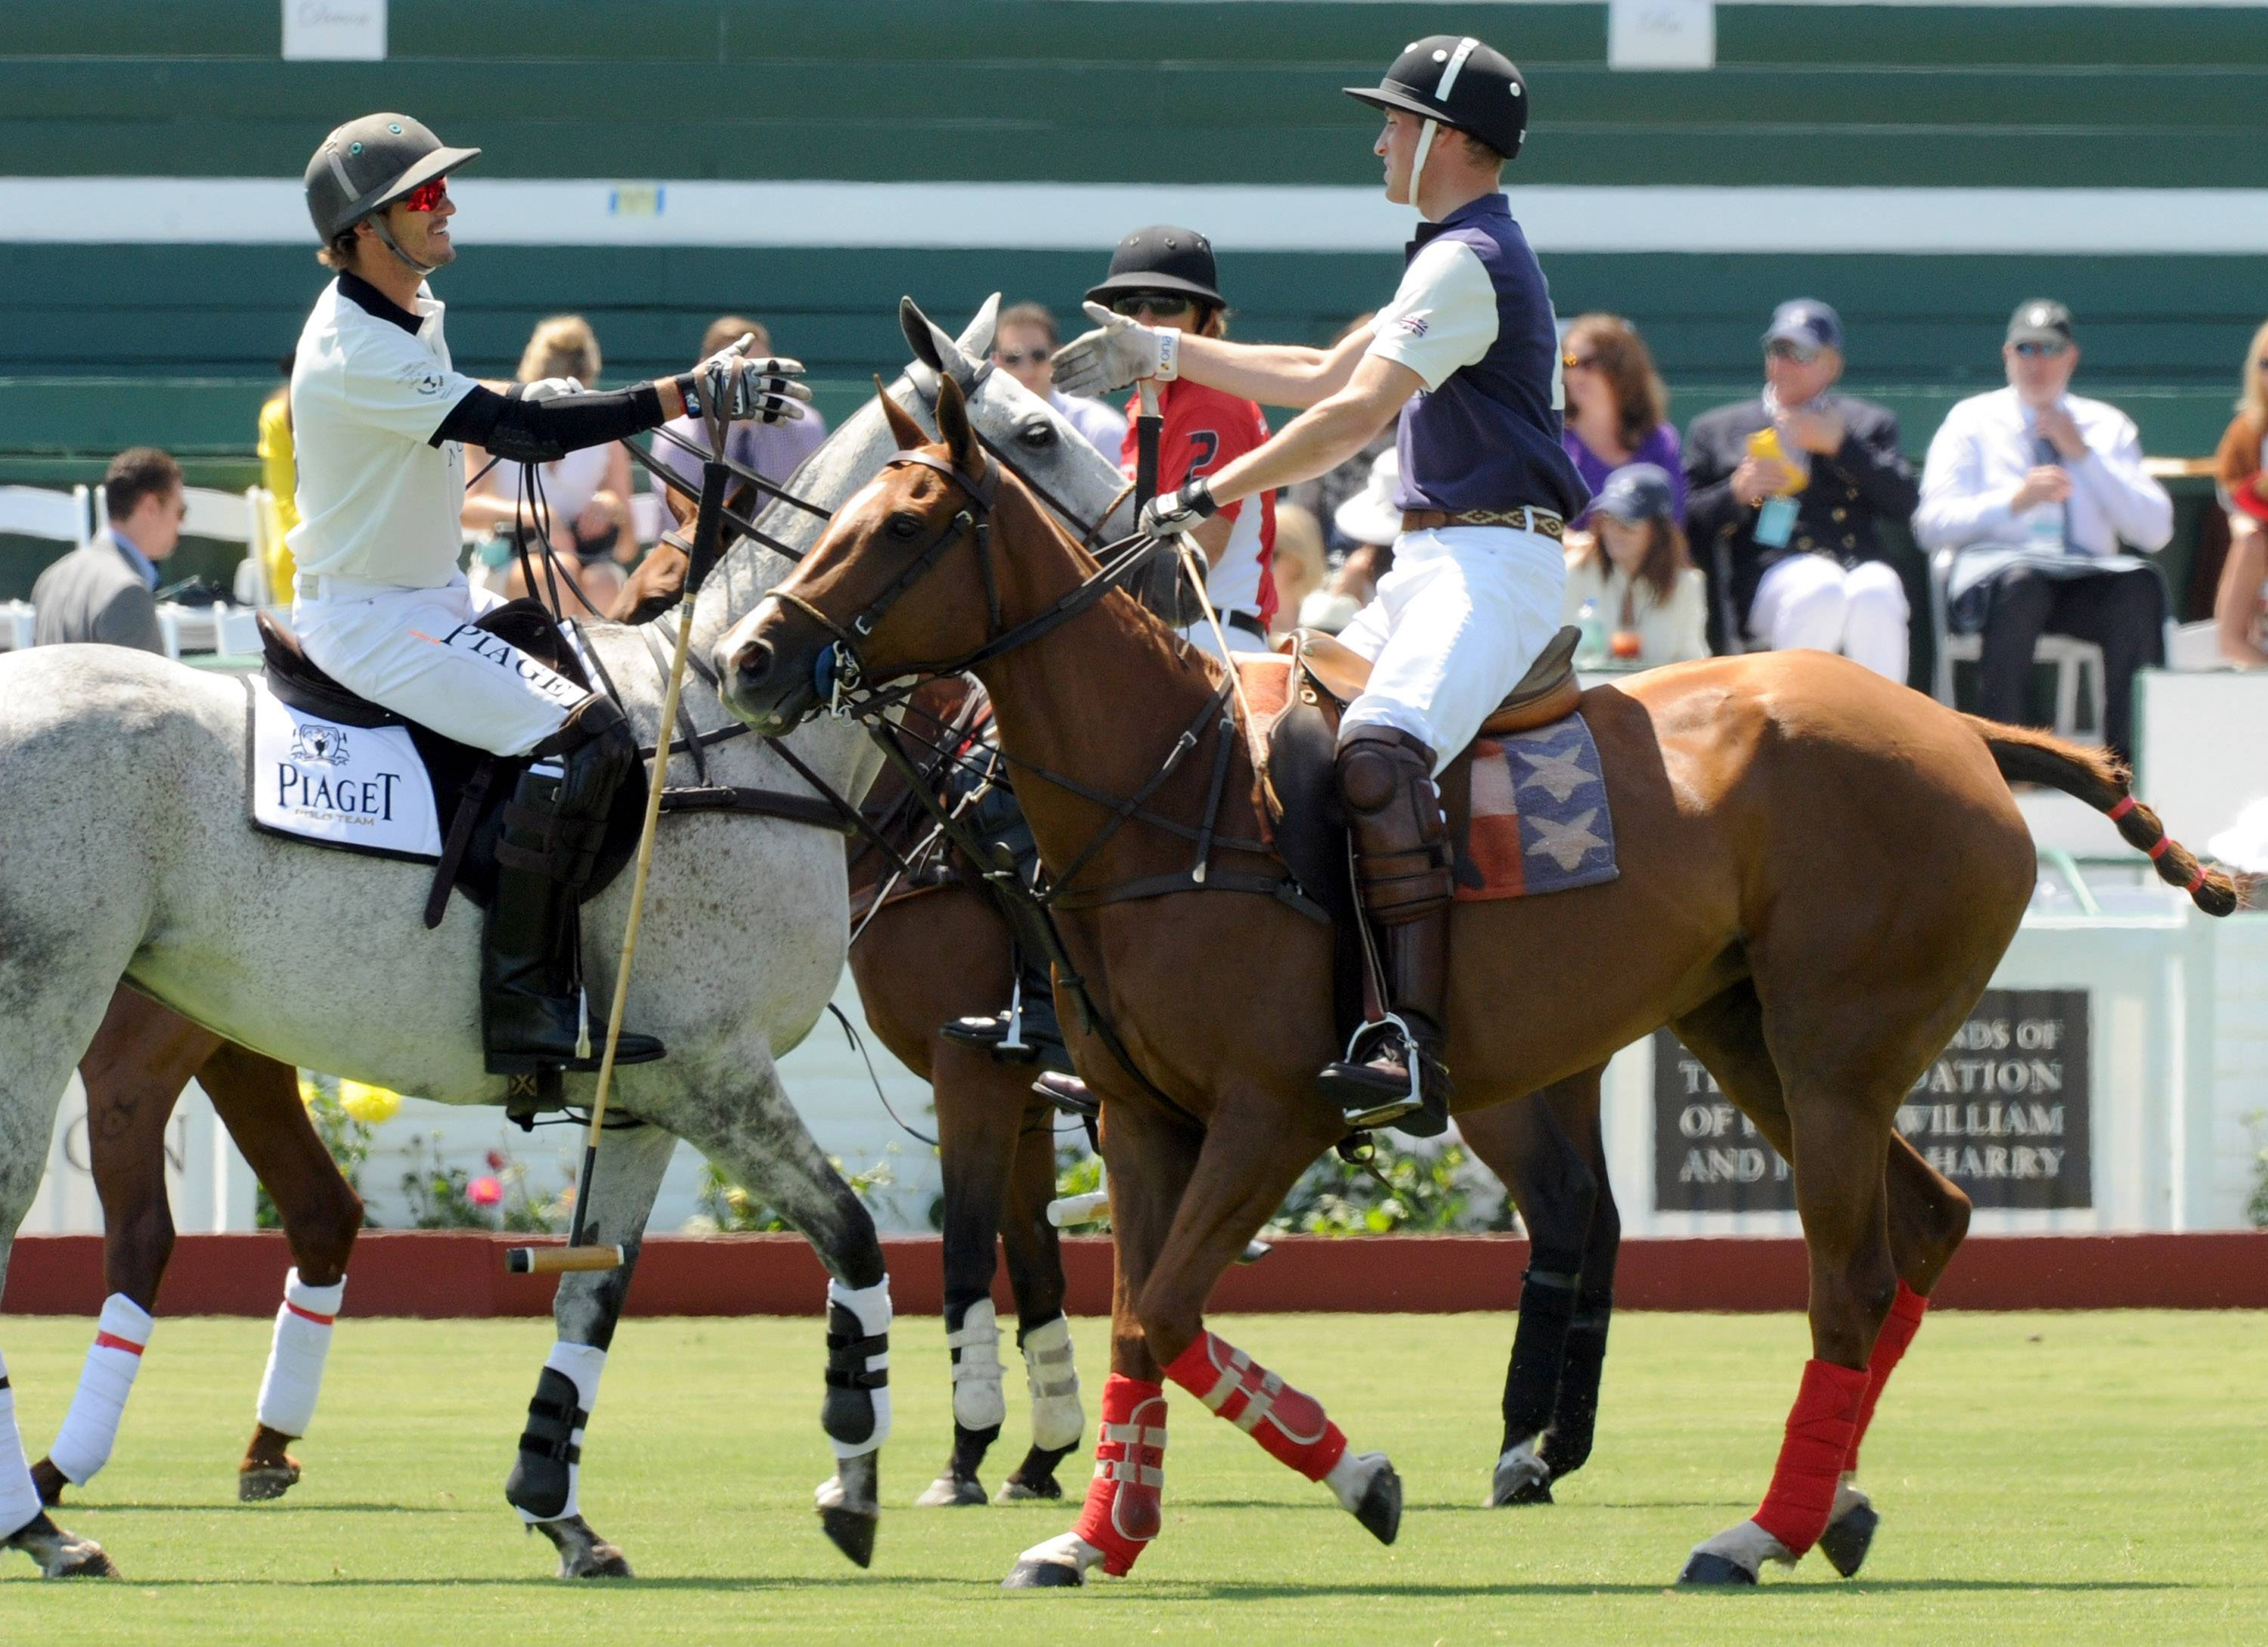 Piaget Announces A New Partnership with the Santa Barbara Polo & Racquet Club